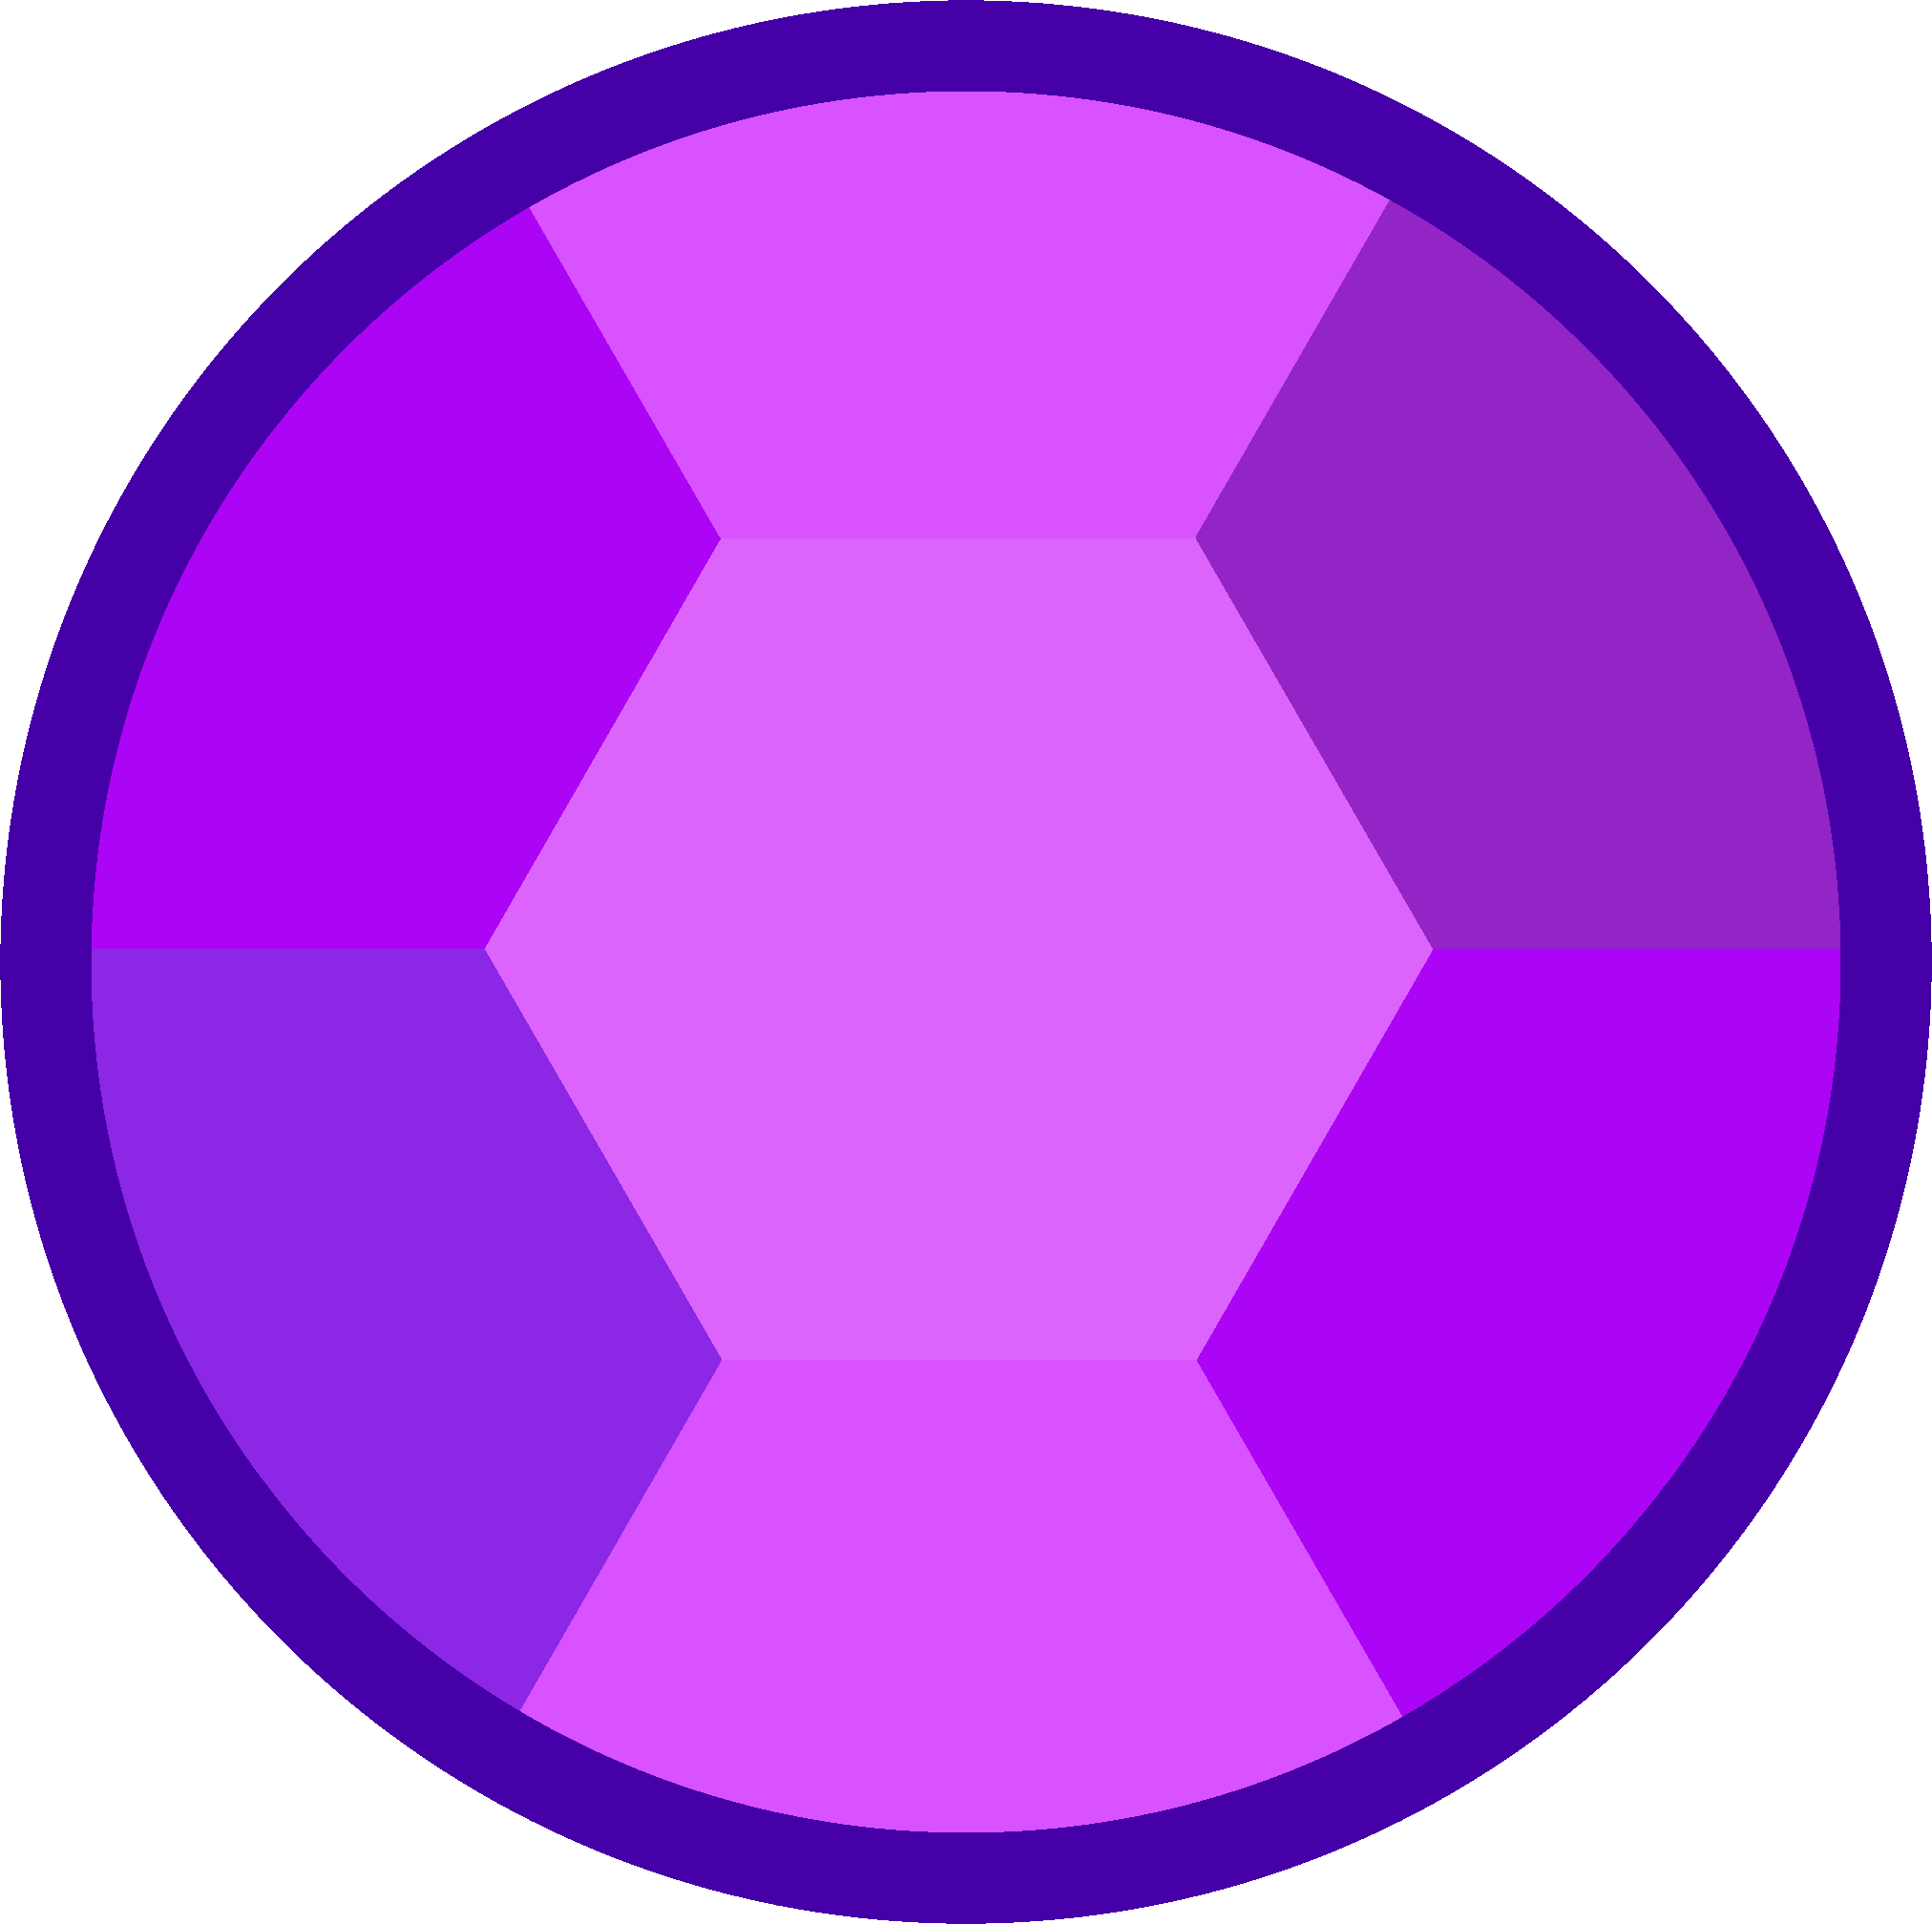 Gems vector circle. New css colors for